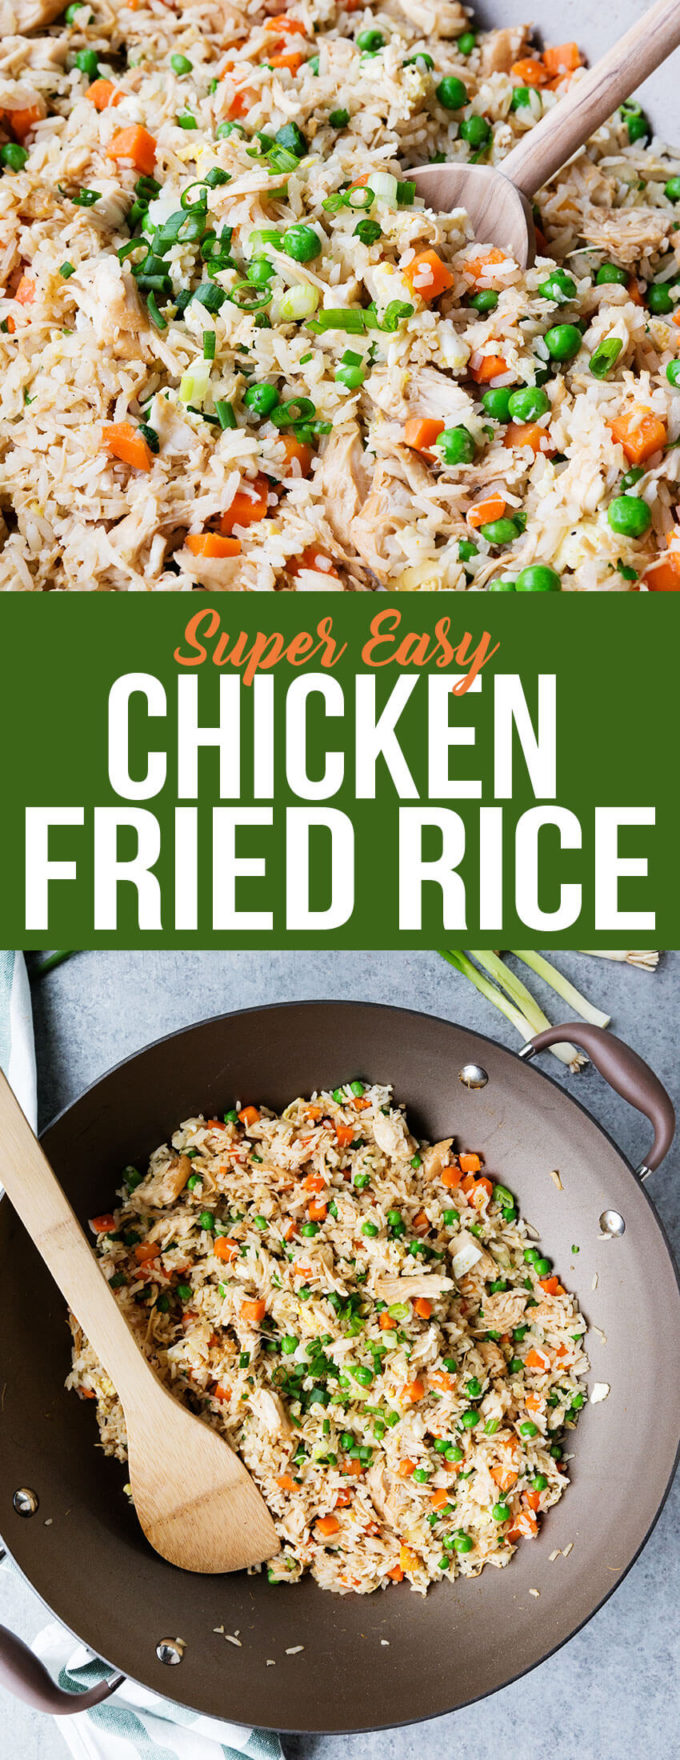 Super easy chicken fried rice, an excellent fried rice that is super simple but bursting with flavor